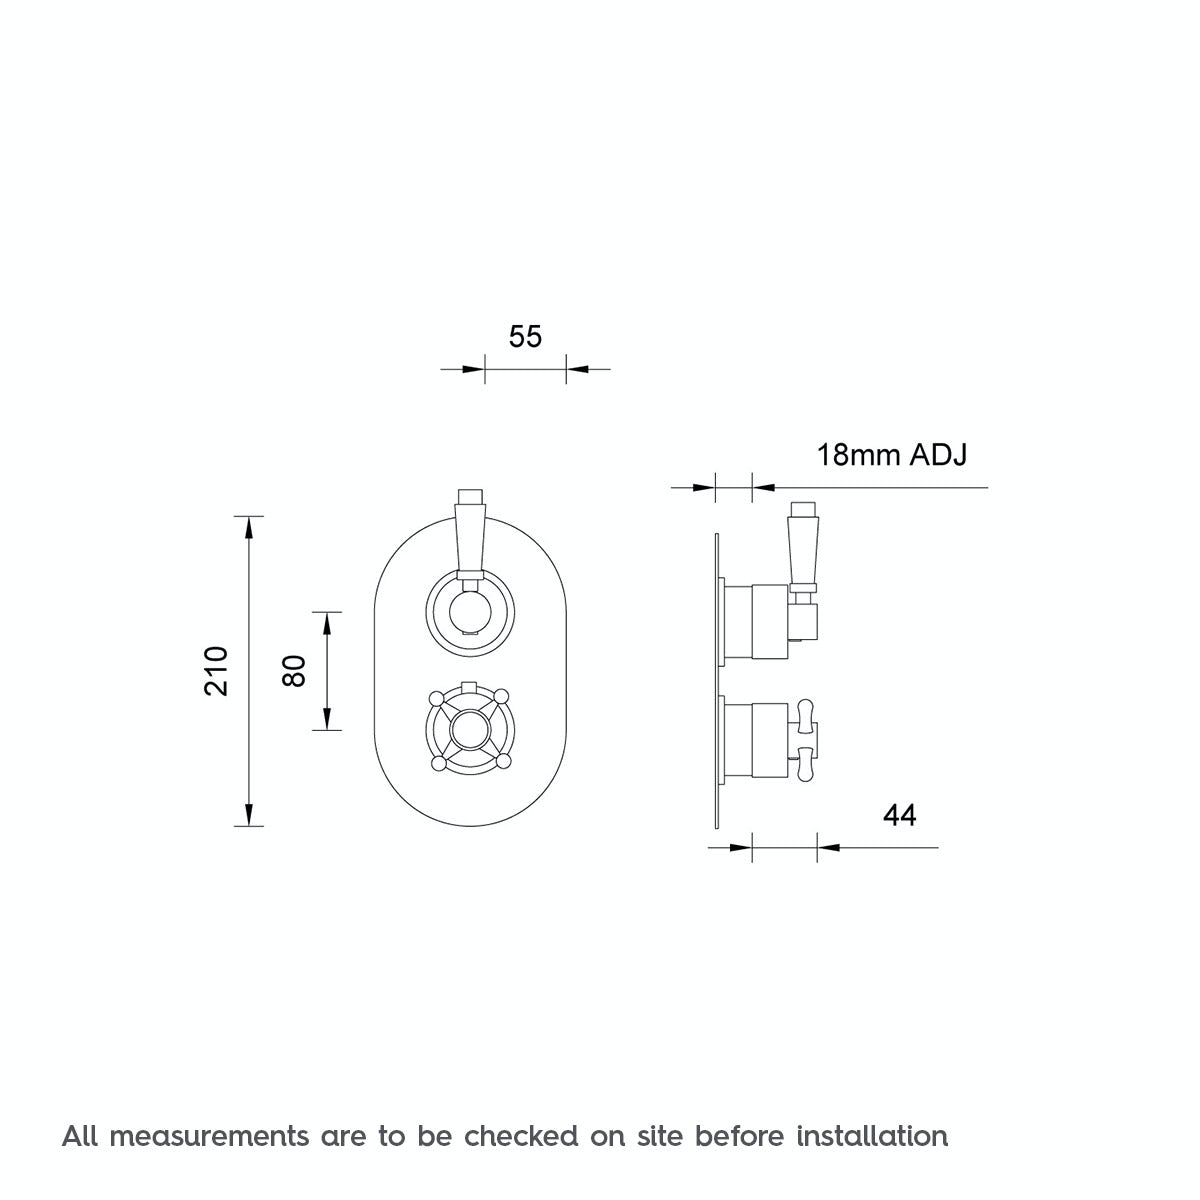 Dimensions for The Bath Co. Traditional oval twin thermostatic shower valve with diverter